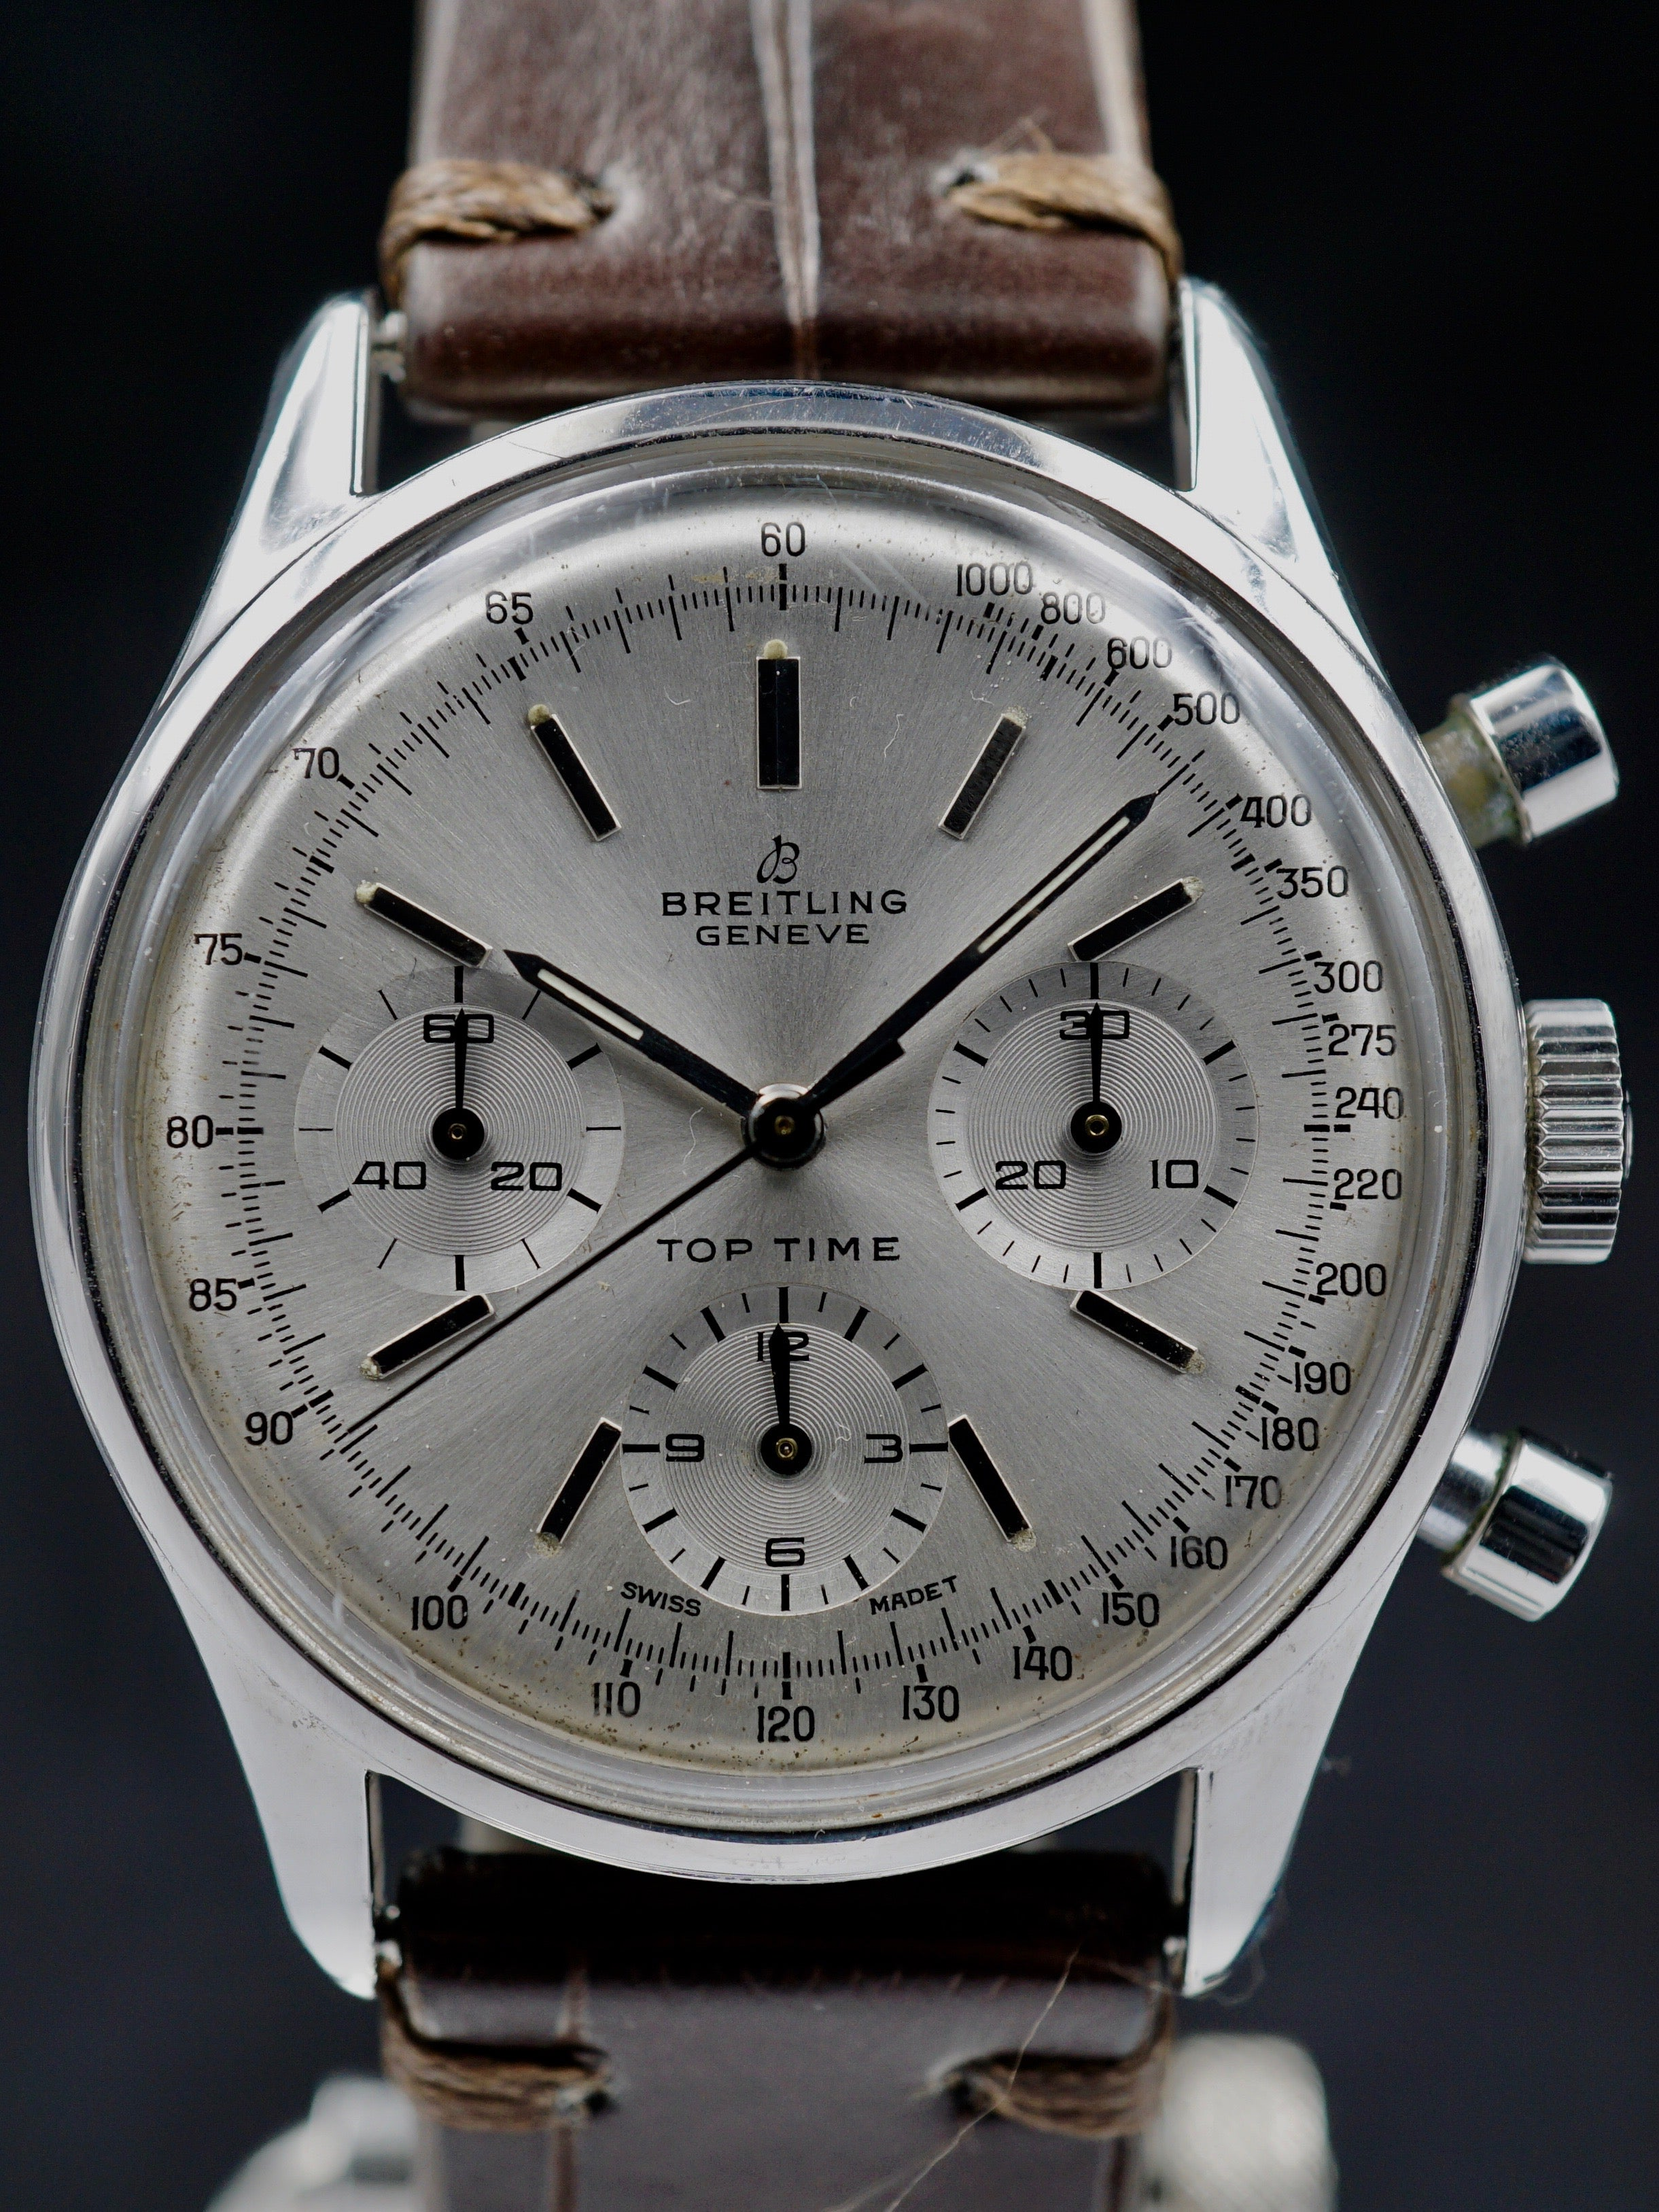 Breitling Top-Time Ref. 810 Mk.1